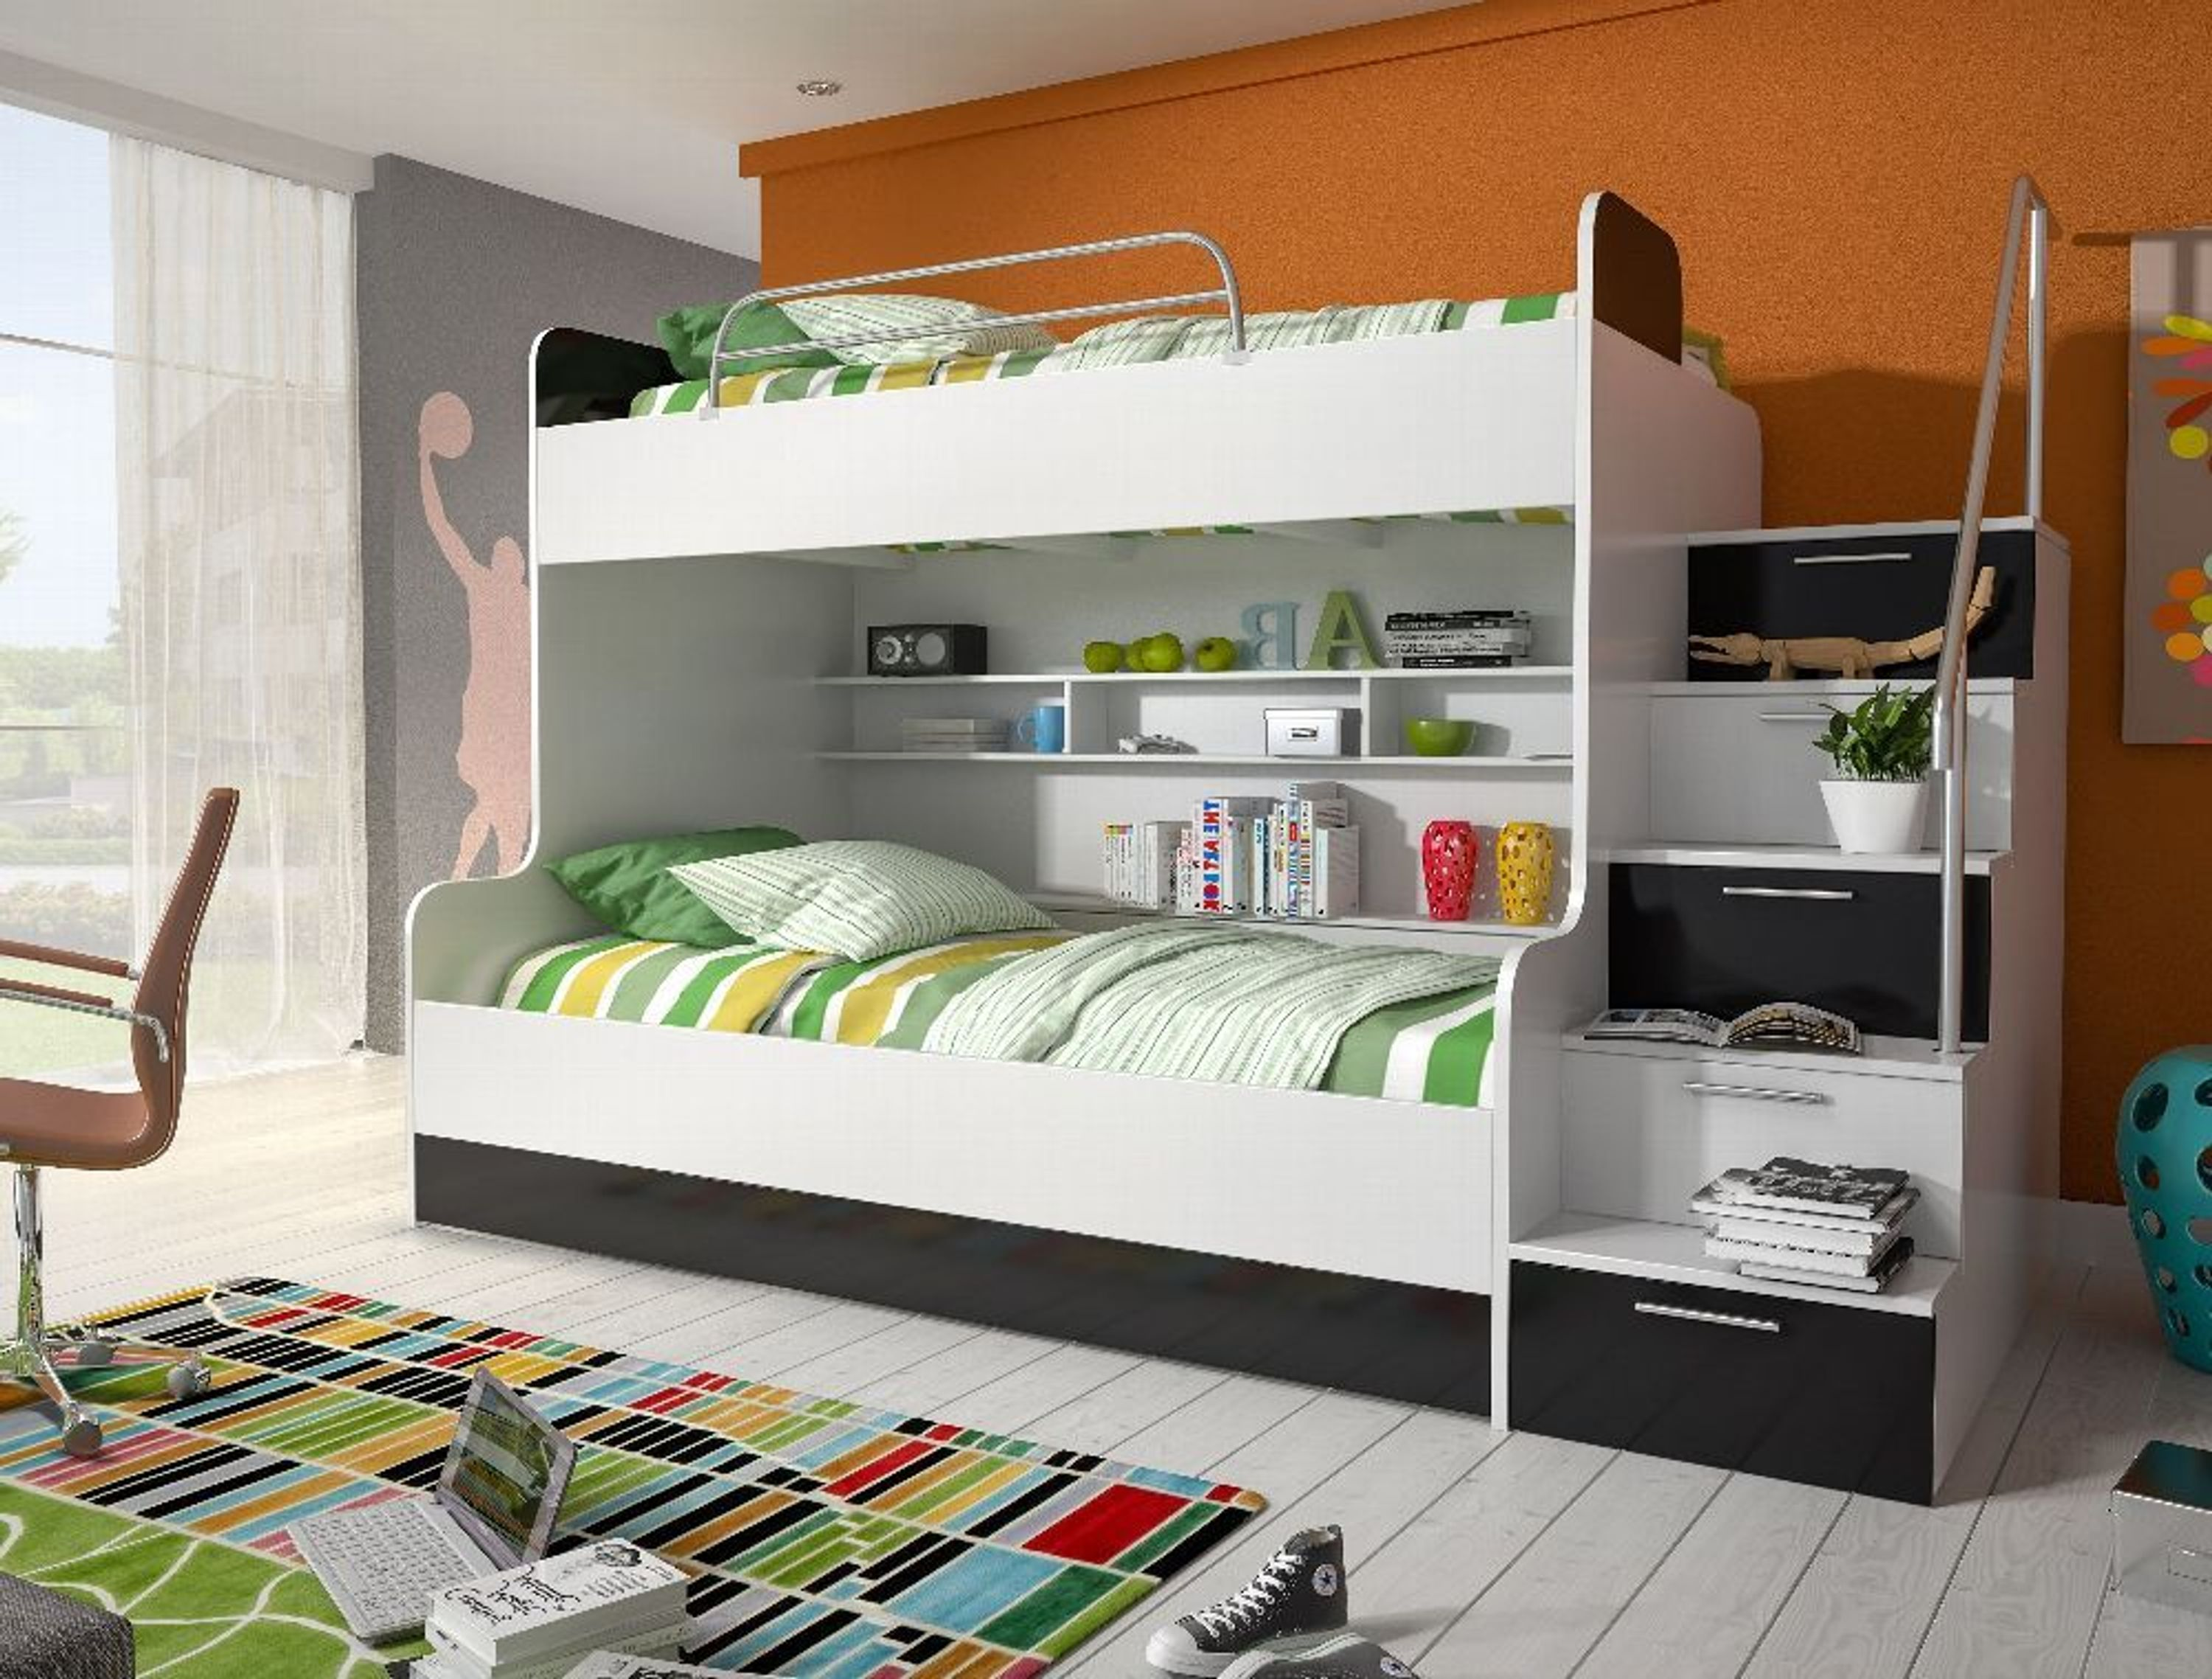 etagenbett kinderbett tito mit seitlicher treppe rechts. Black Bedroom Furniture Sets. Home Design Ideas